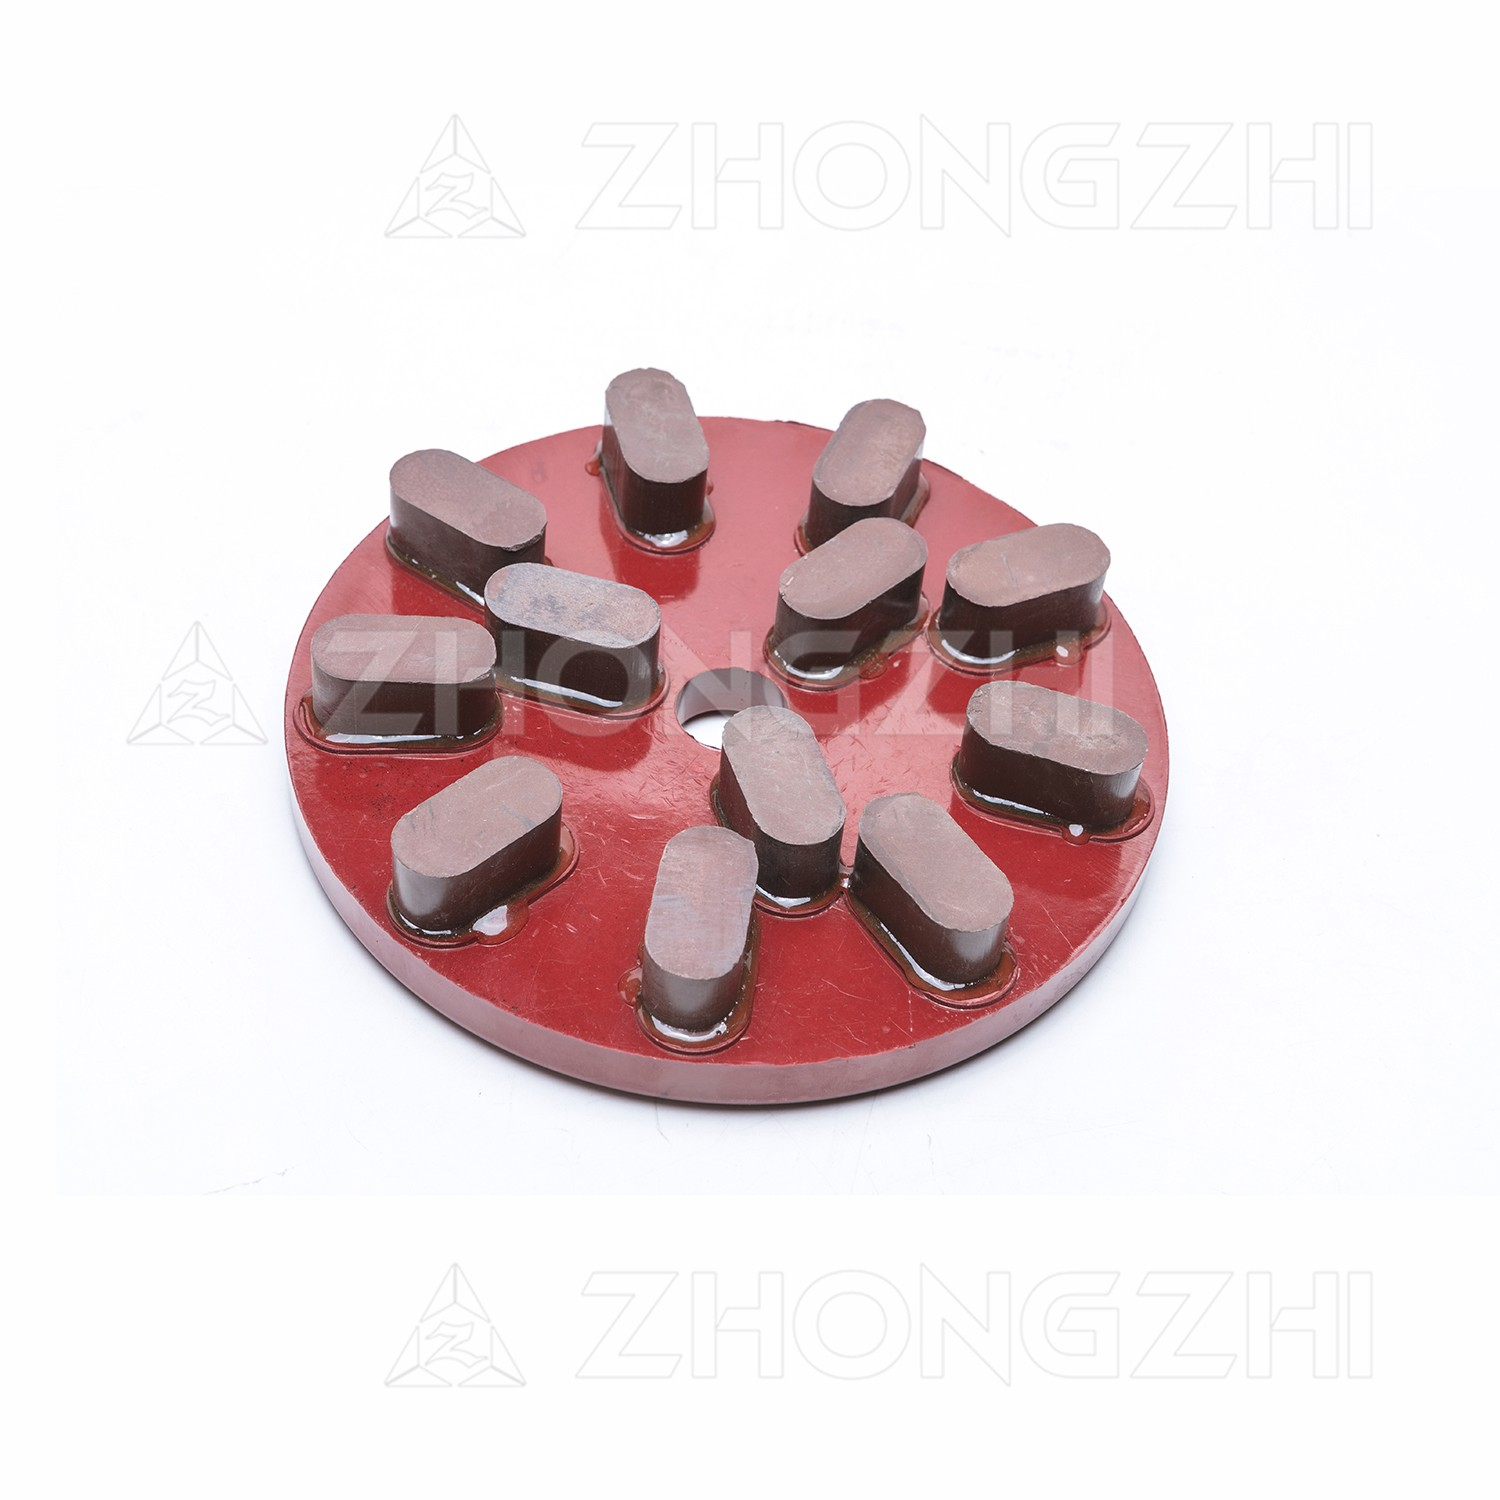 Higher efficiency, Better glossiness, and Low Cost Resin Grinding Disc Manufacturers, Higher efficiency, Better glossiness, and Low Cost Resin Grinding Disc Factory, Supply Higher efficiency, Better glossiness, and Low Cost Resin Grinding Disc